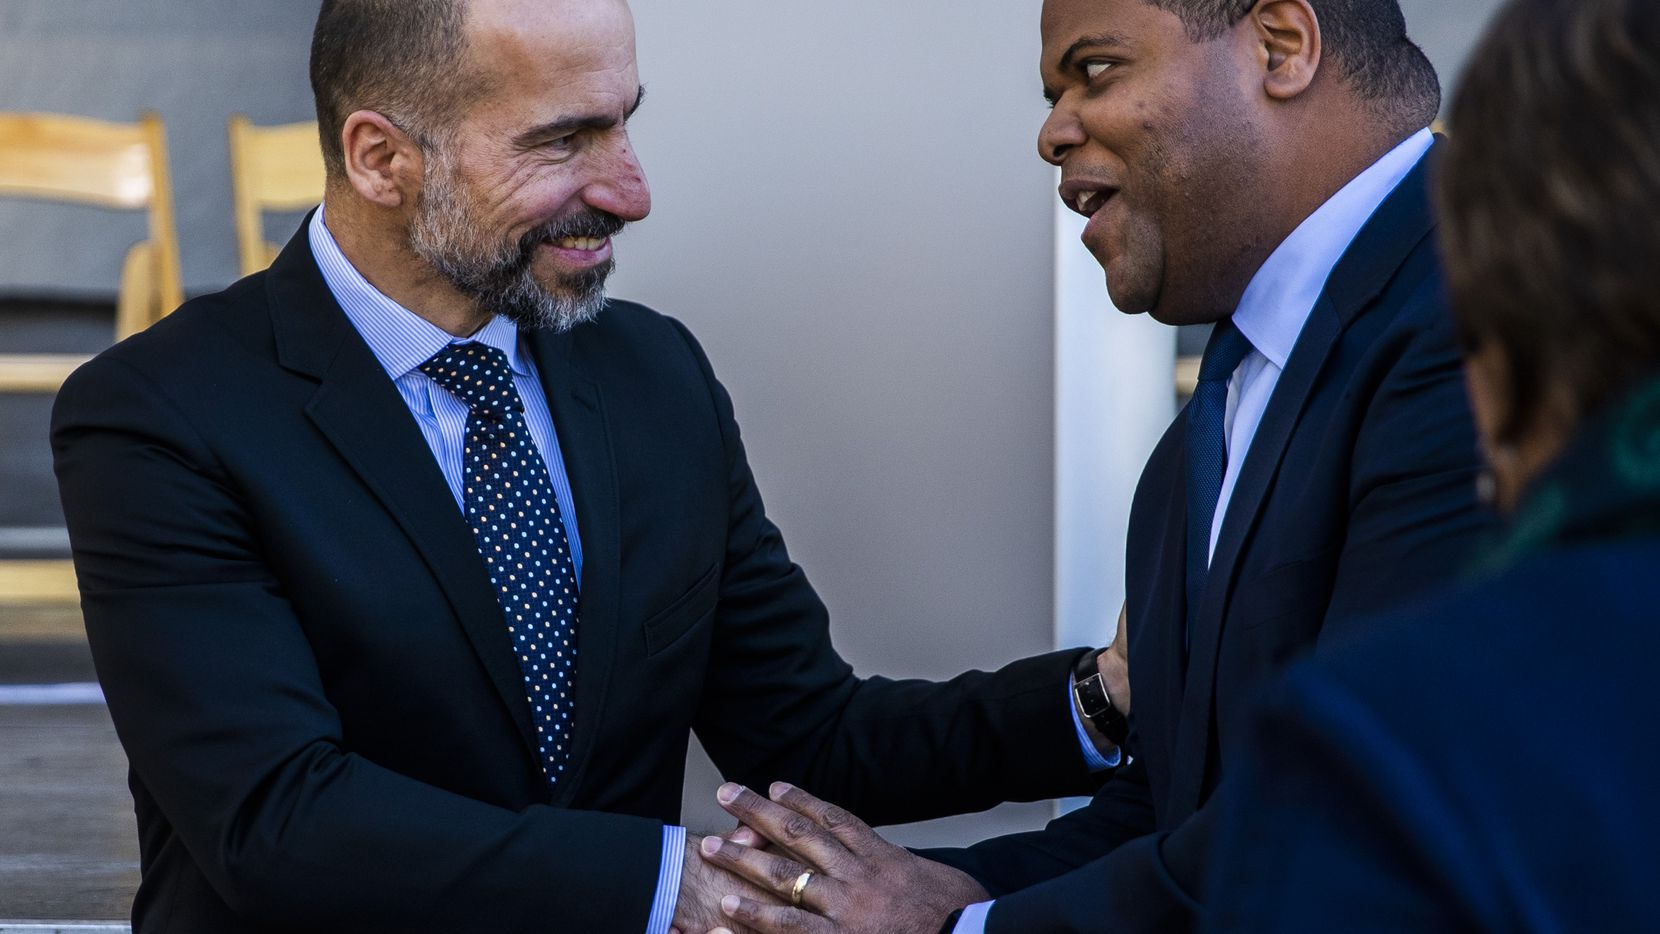 Uber CEO Dara Khosrowshahi (left) greets Dallas Mayor Eric Johnson at a ground breaking ceremony for a new Uber Deep Ellum office on Friday, November 1, 2019 in Dallas. (Ashley Landis/The Dallas Morning News)